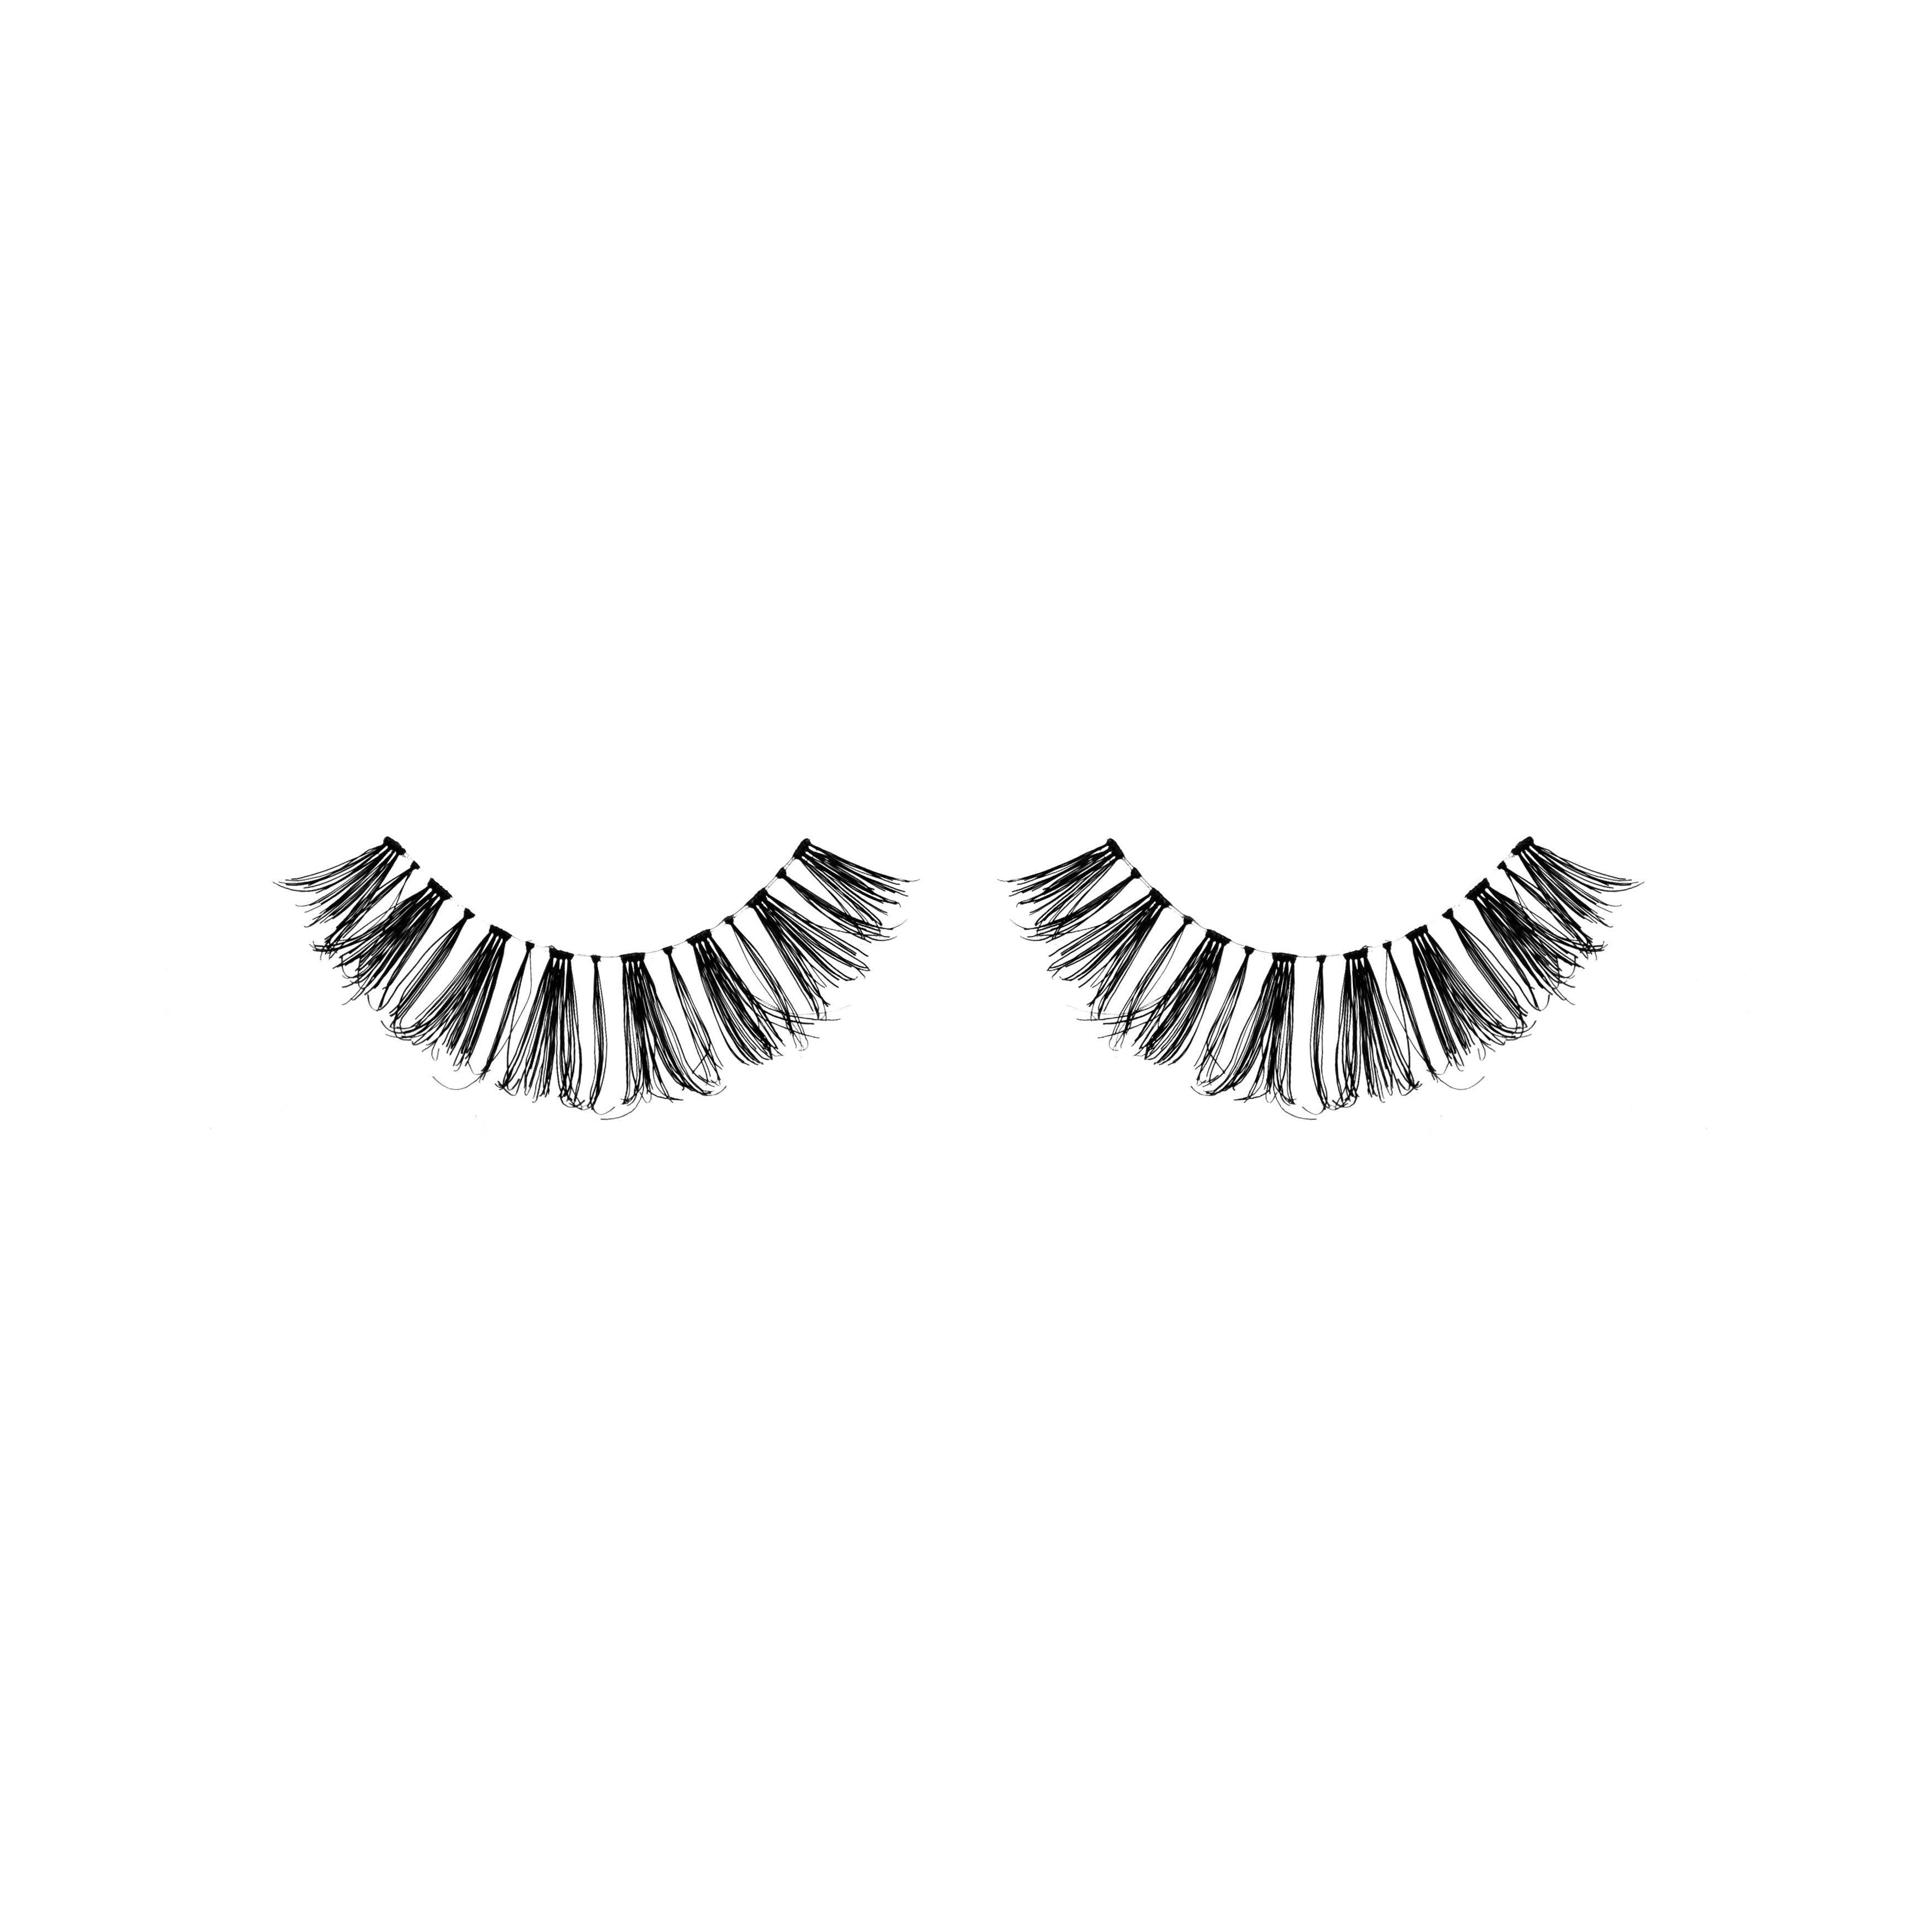 HOLLYWOOD HILLS-MORPHE LASH, view larger image